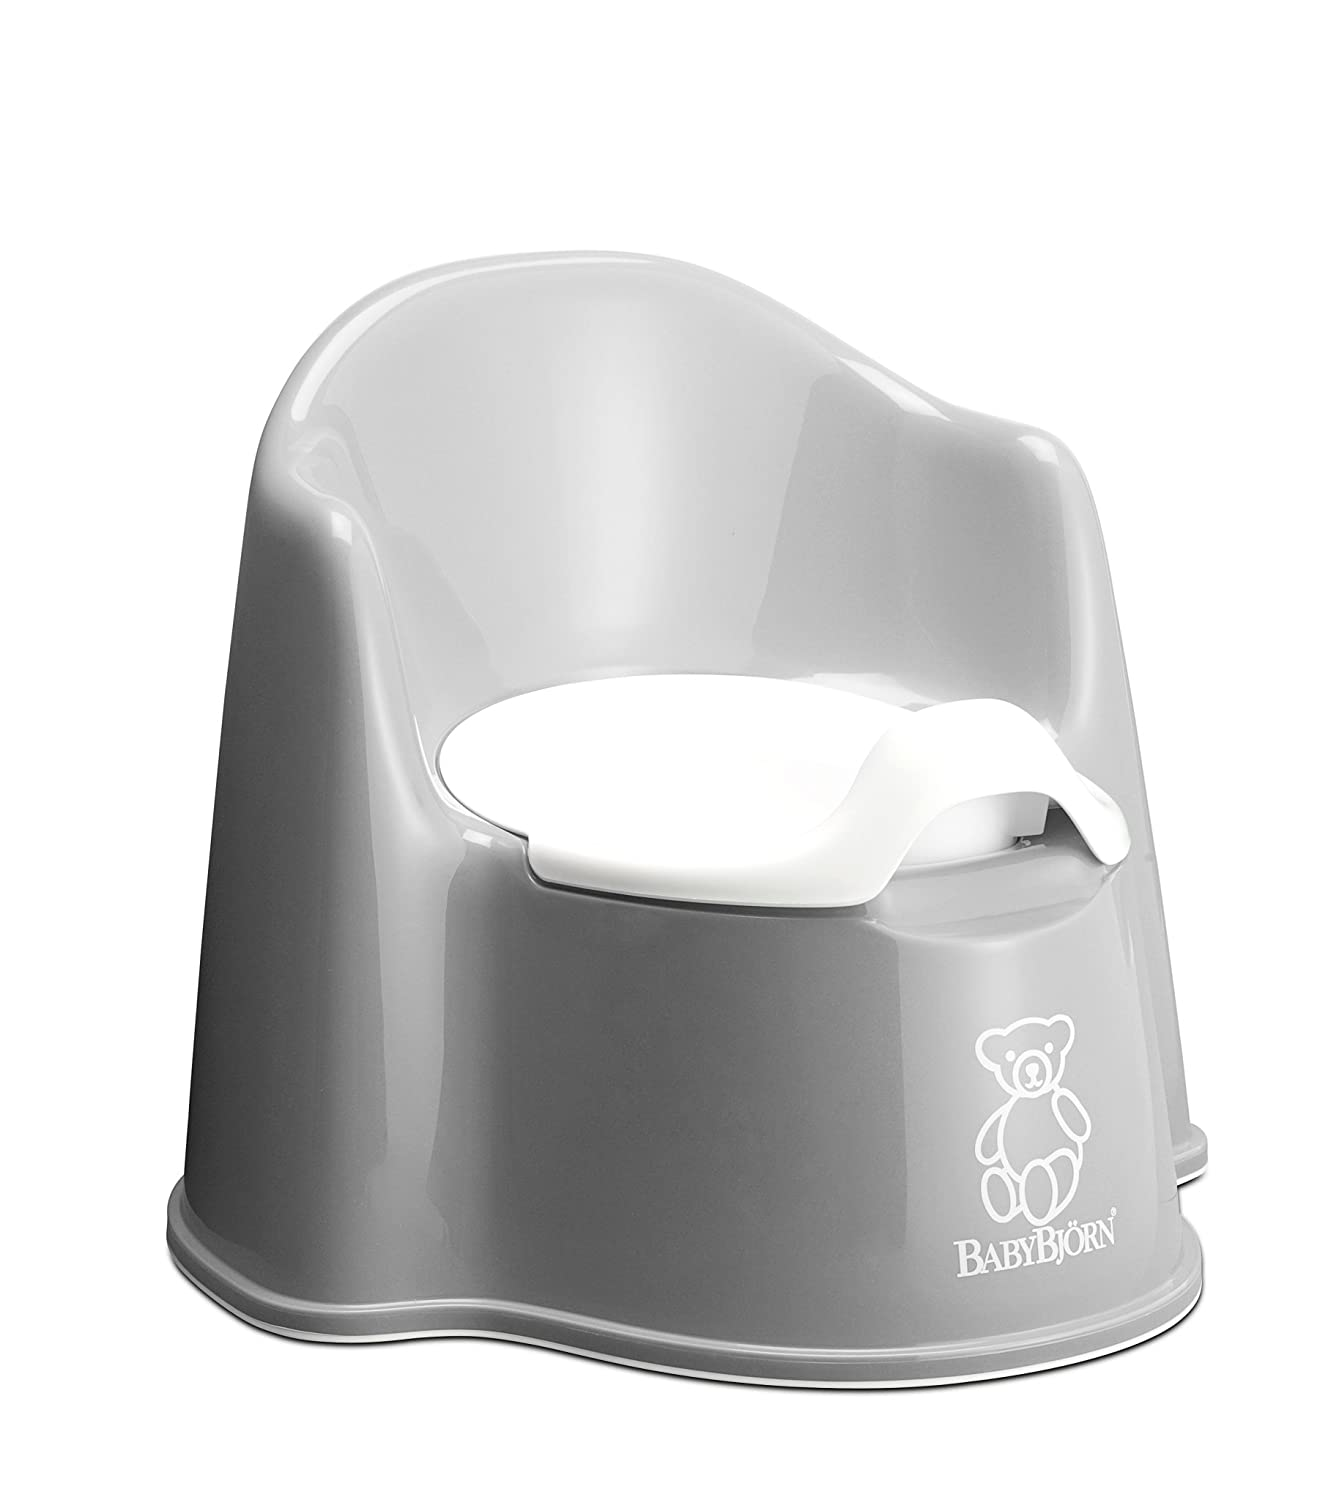 BABYBJORN Potty Chair, Gray